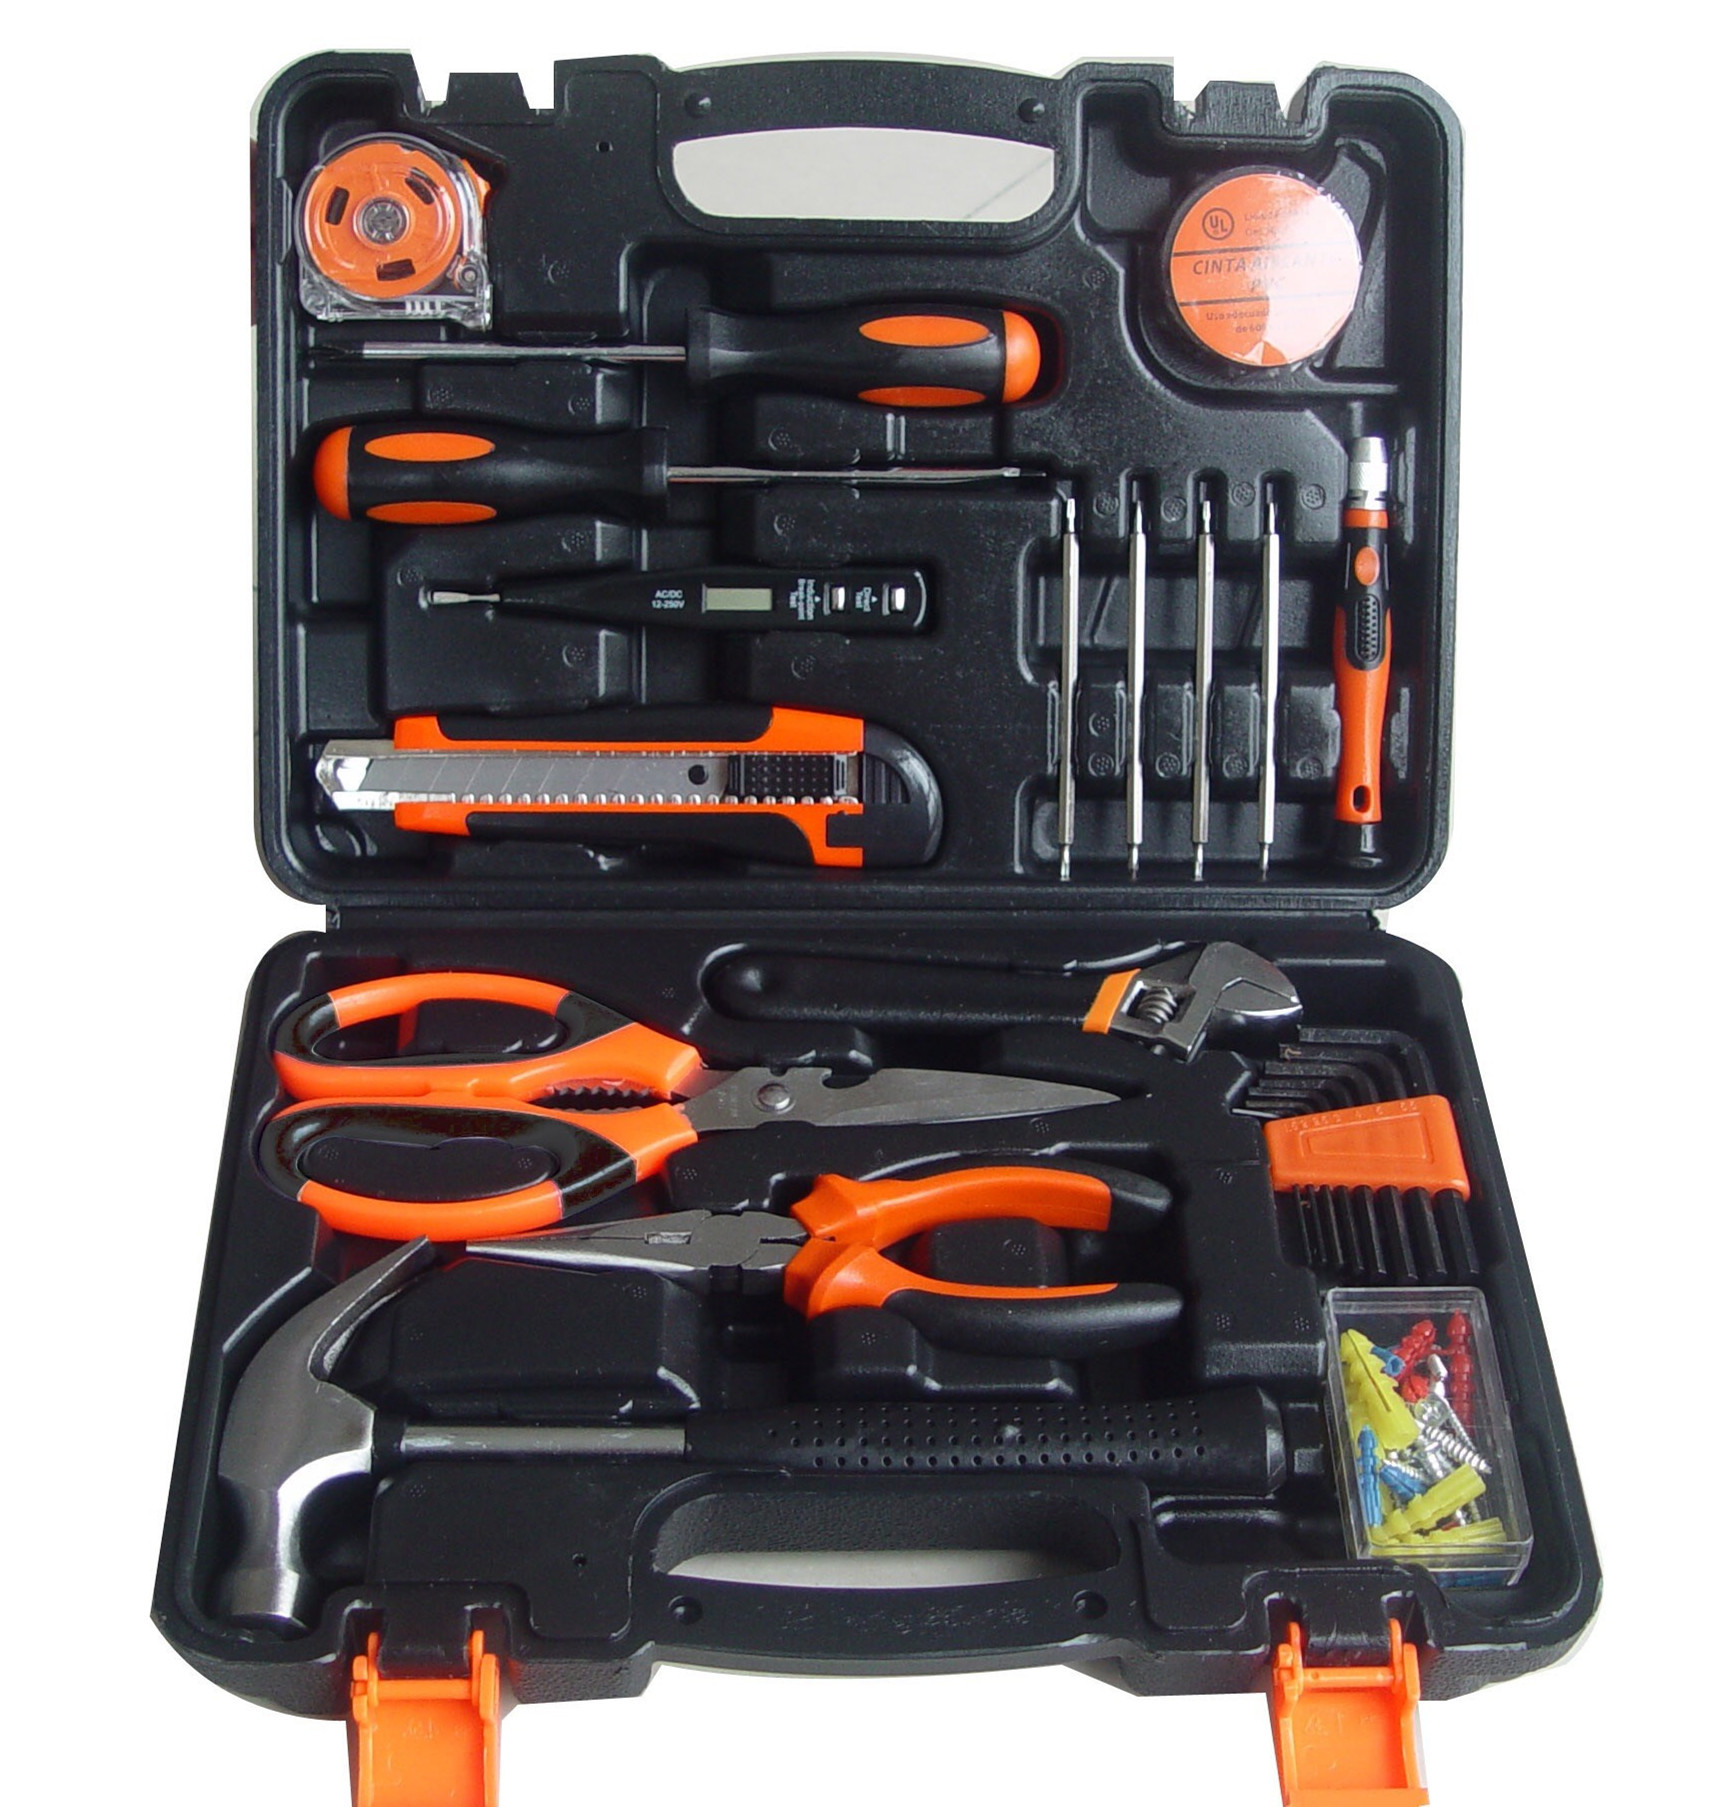 Manual Hardware Kits Woodworking Electric Tool Box Household Set Combination Repair Tools Gift Set|Power Tool Sets| |  - title=